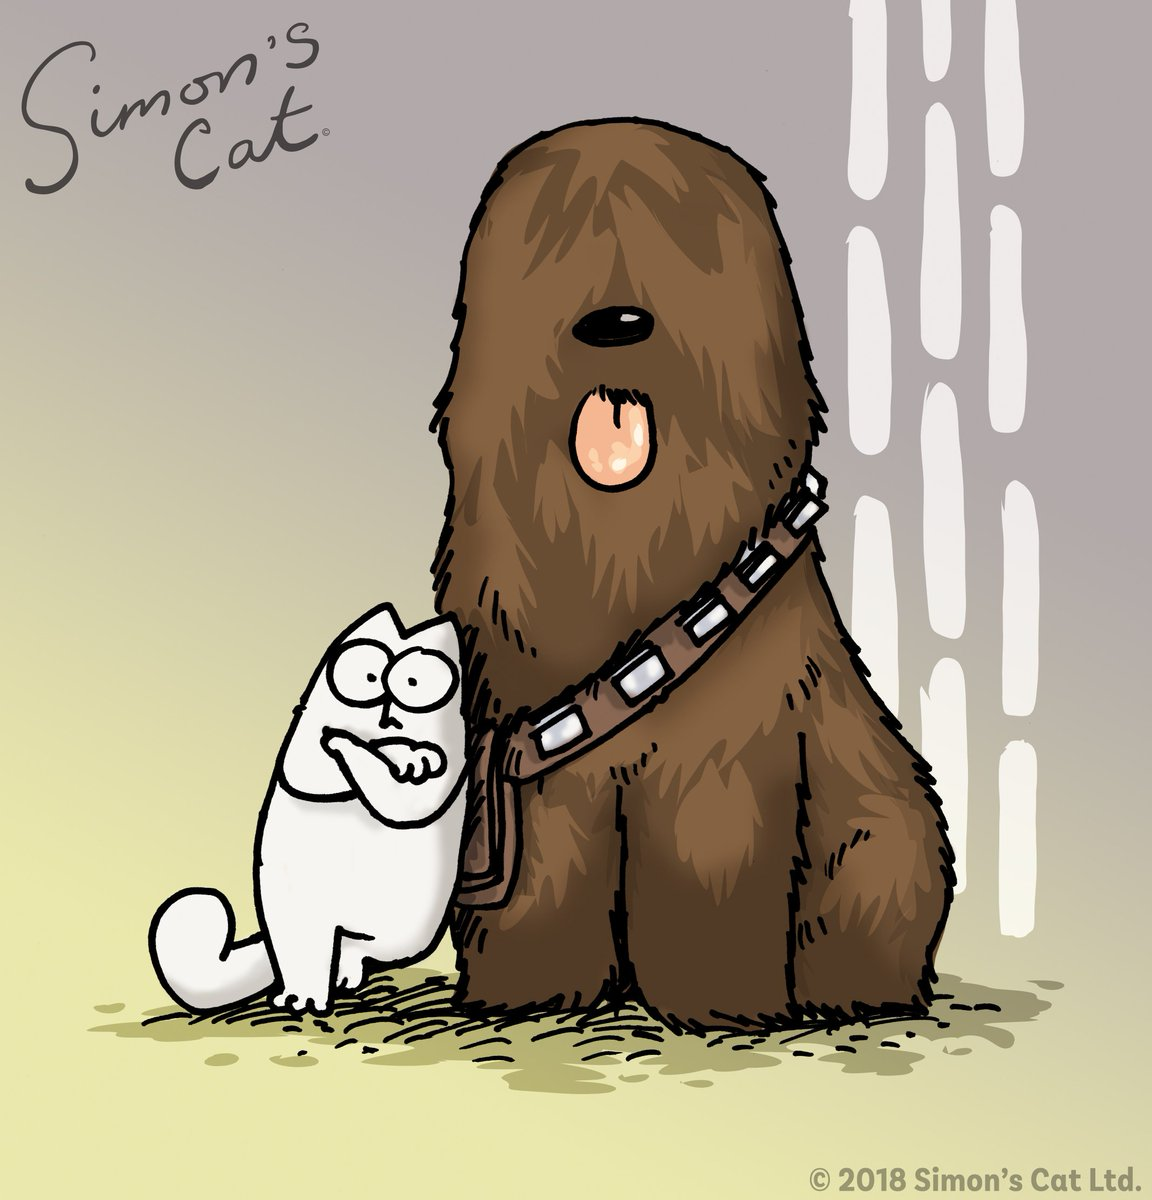 #MayThe4thBeWithYou Have a great #StarWars Day! Meow 😸